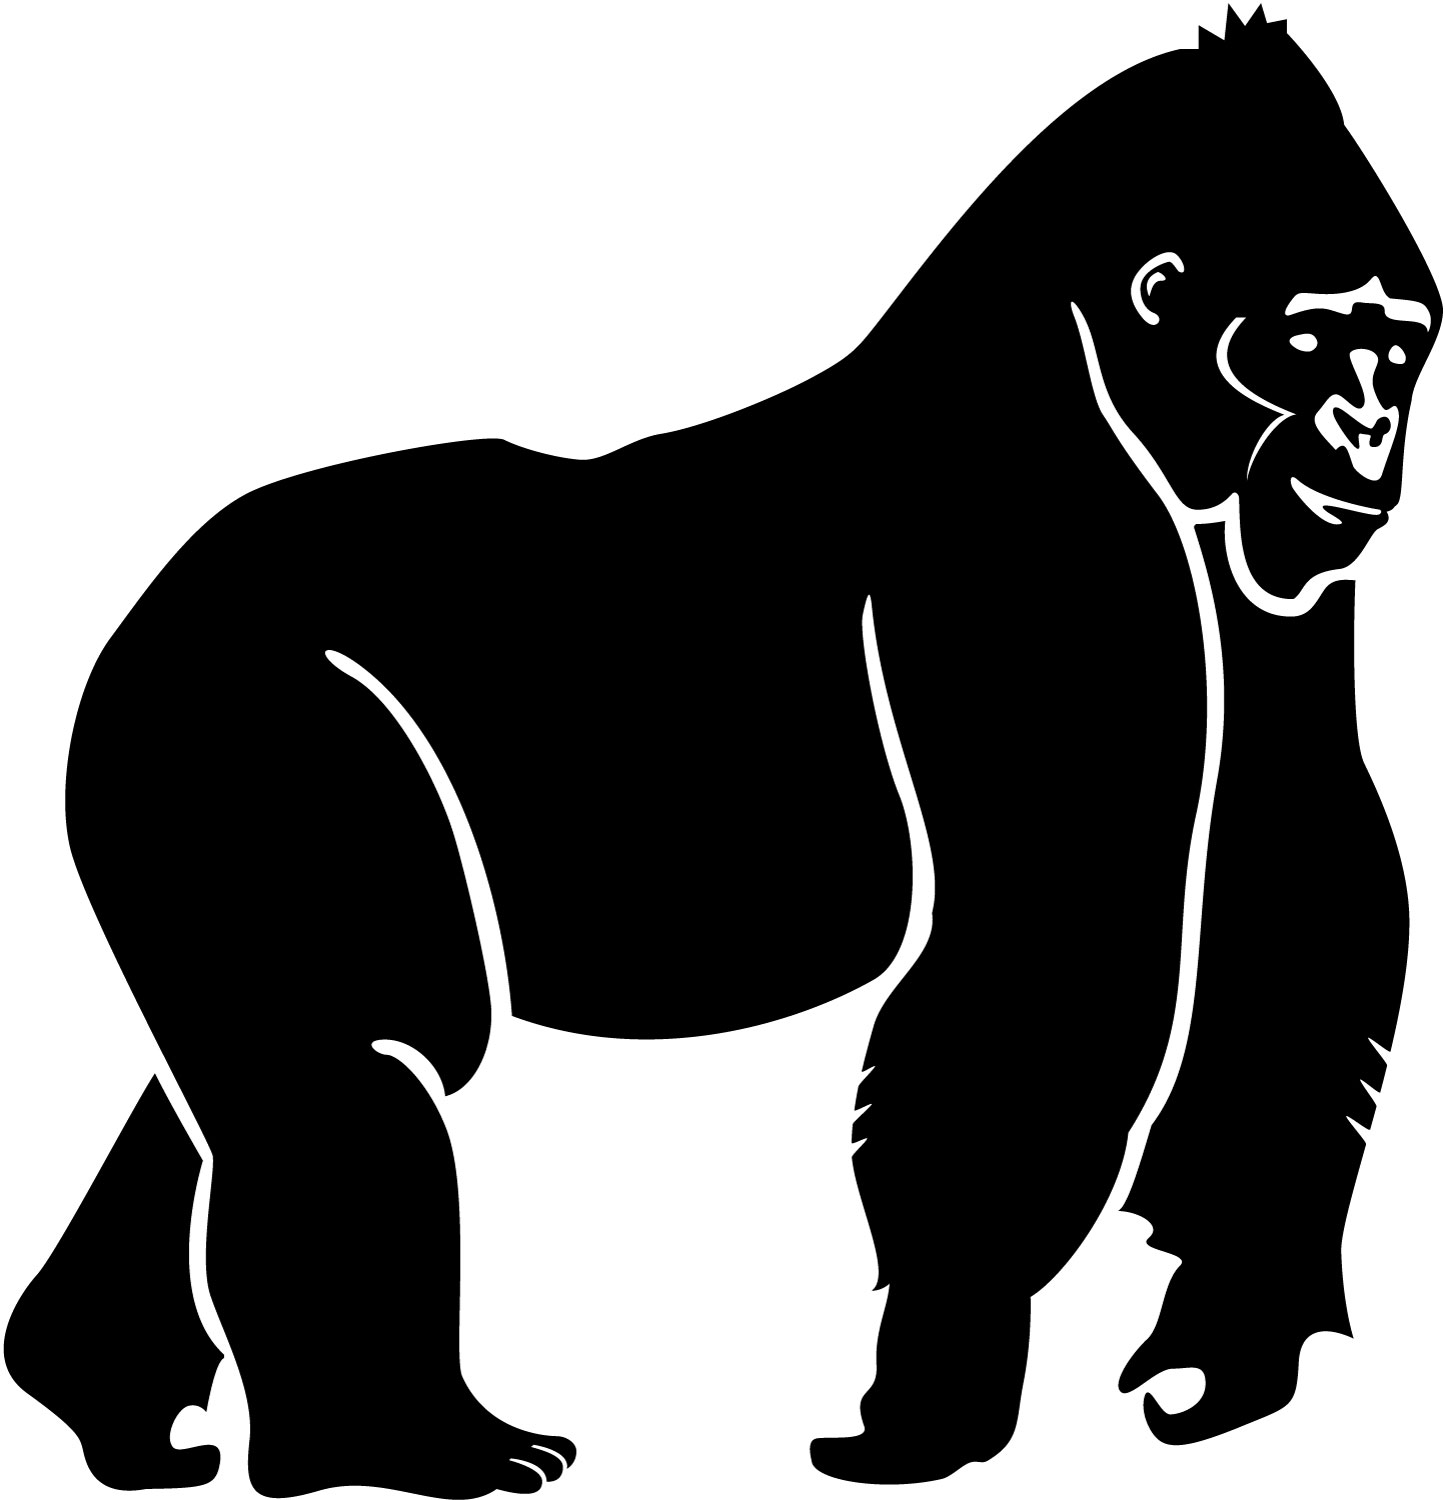 Ape Animated Clipart - Clipart Kid